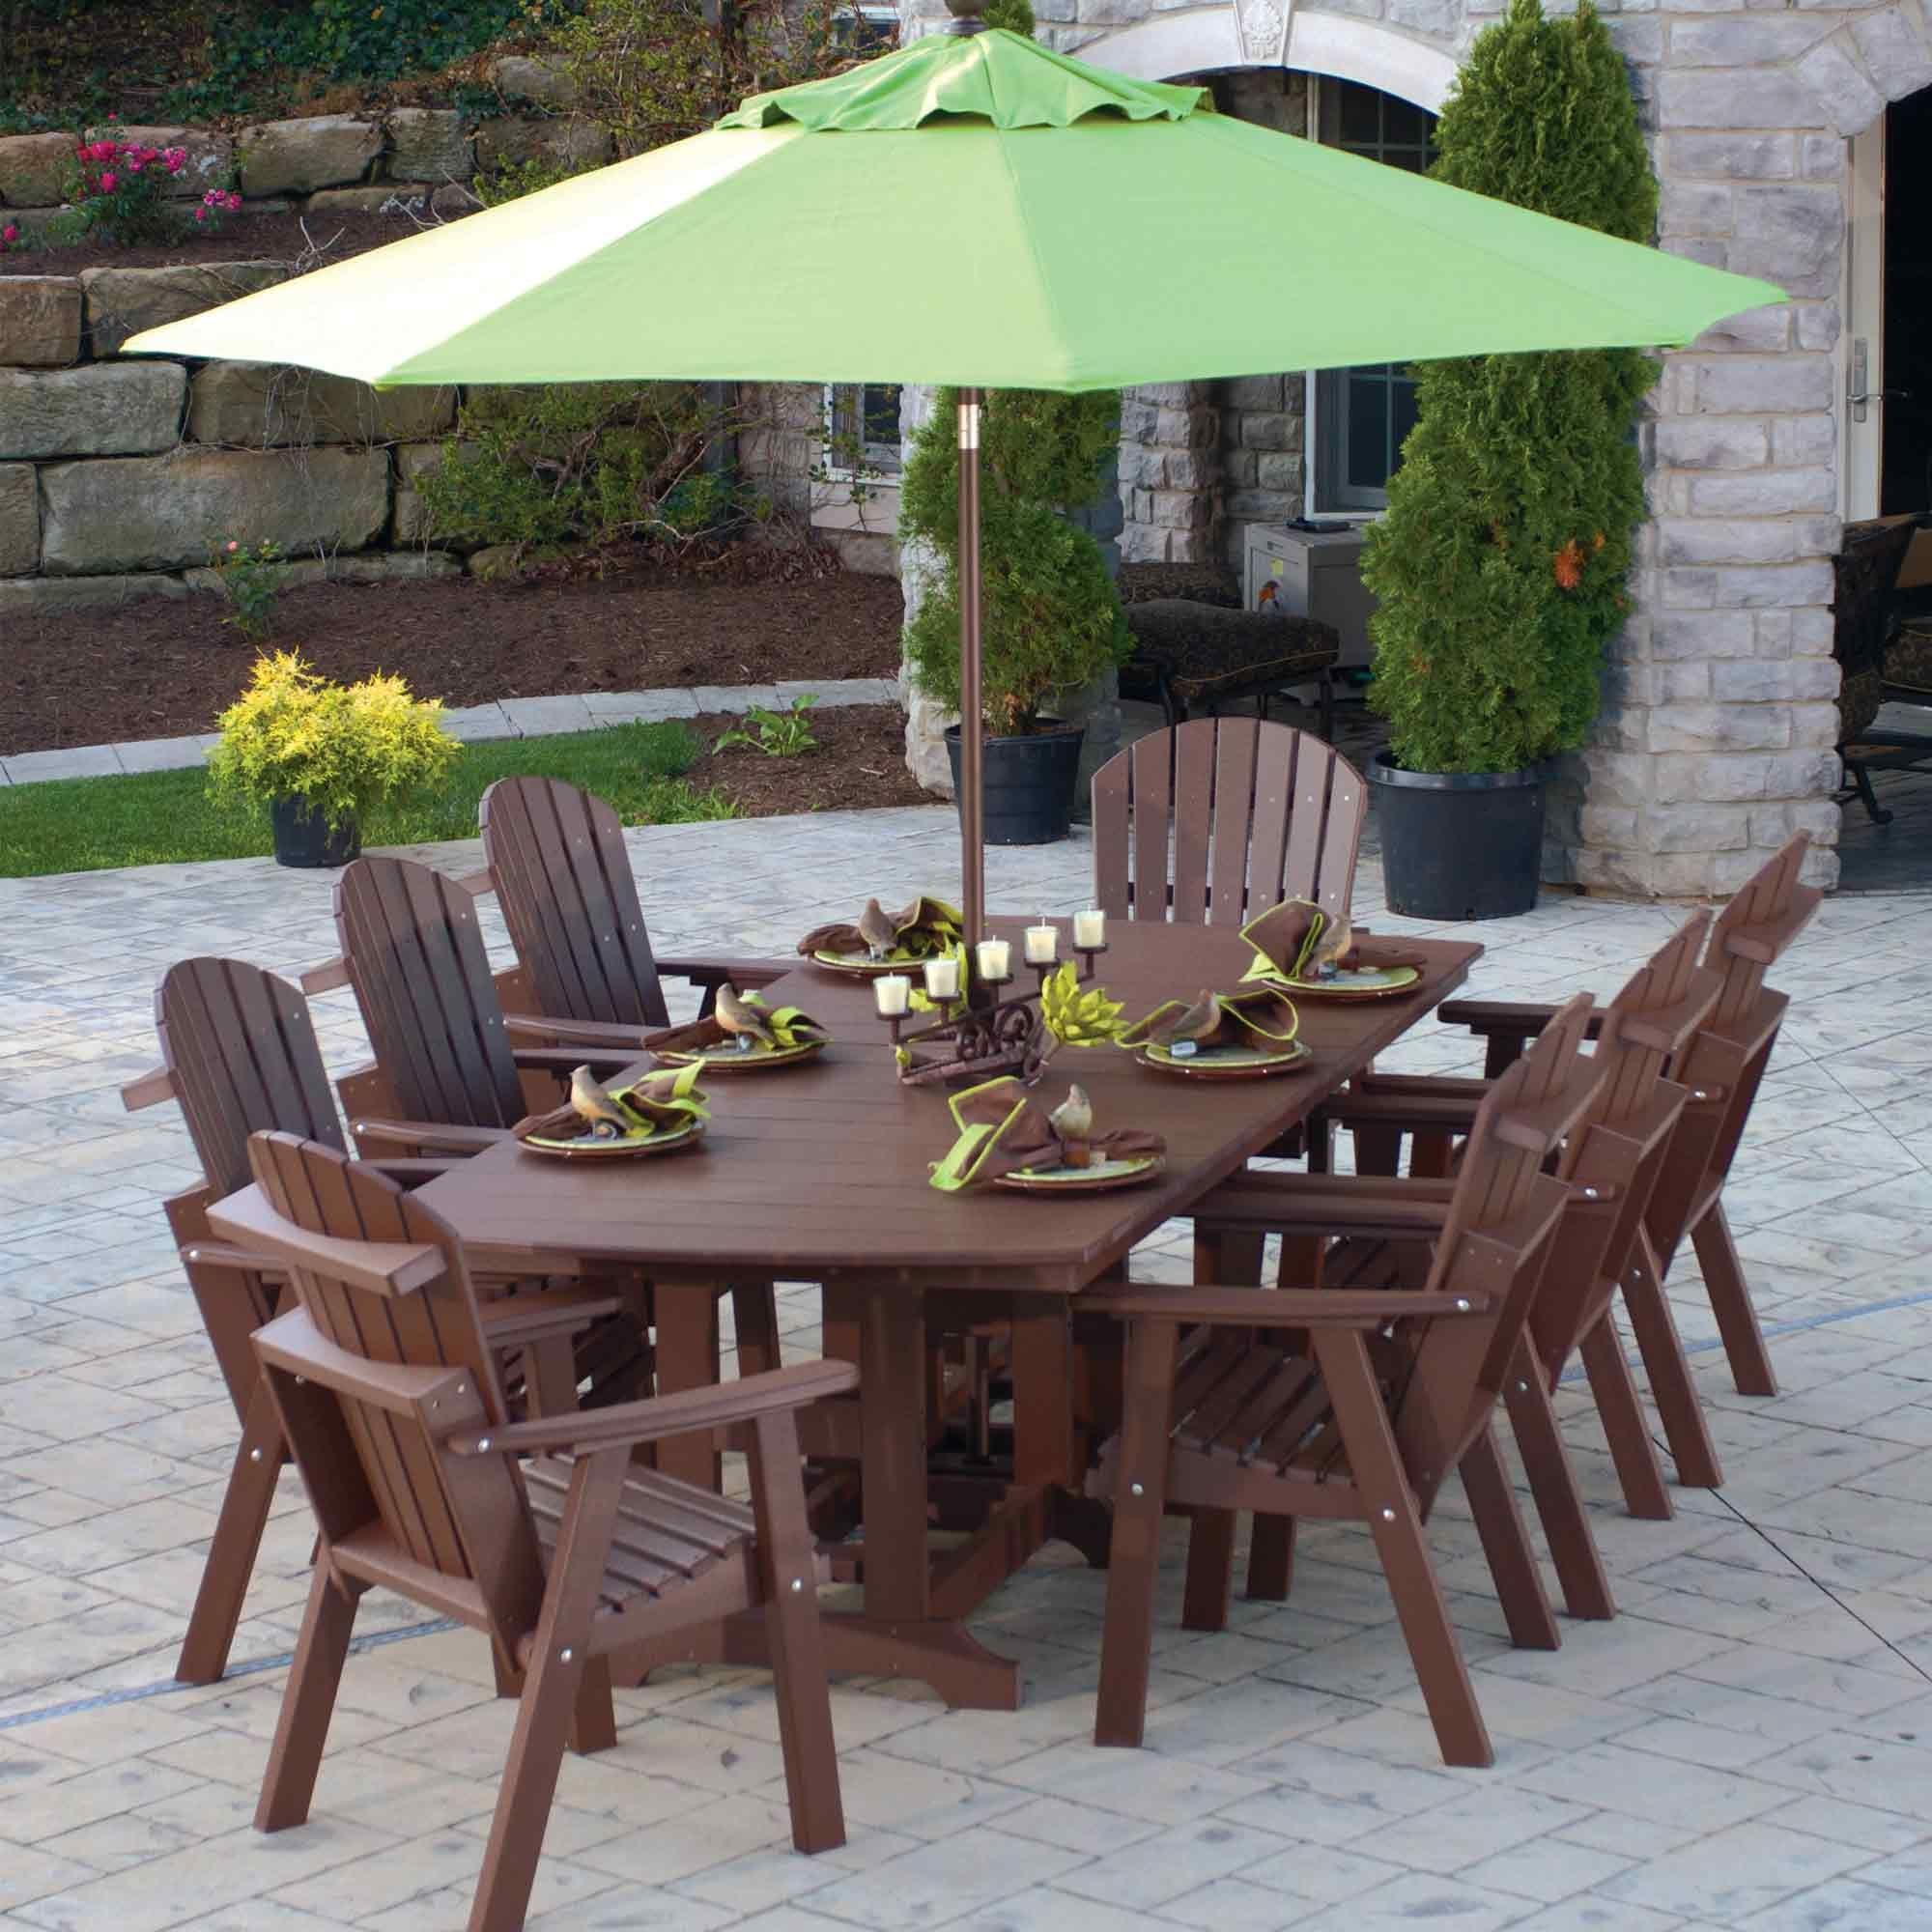 Dining Set By Berlin Gardens Outdoor Polywood Furniture That